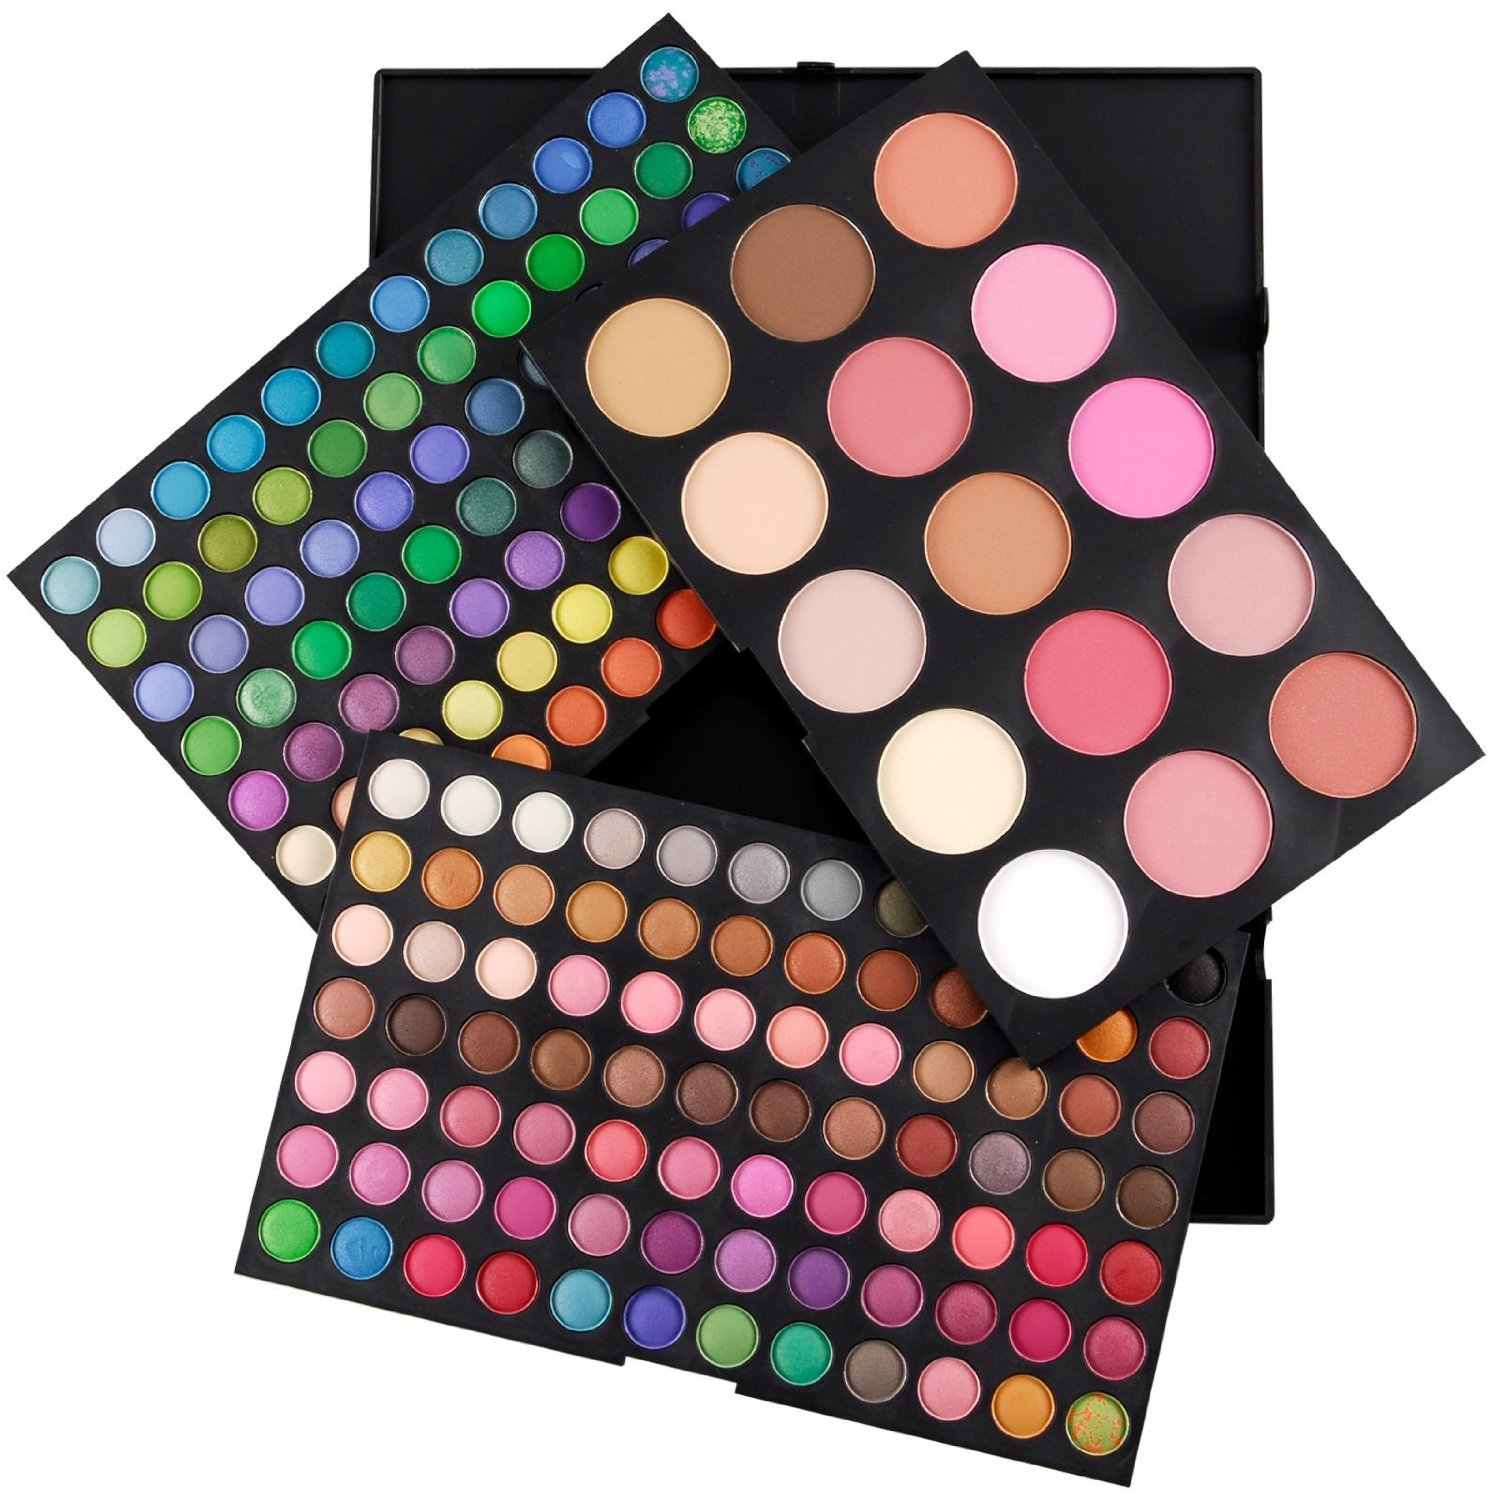 183 Colors Eyeshadow Blush Bronze Highlight Palette Make up Kit by DELIAWINTERFEL